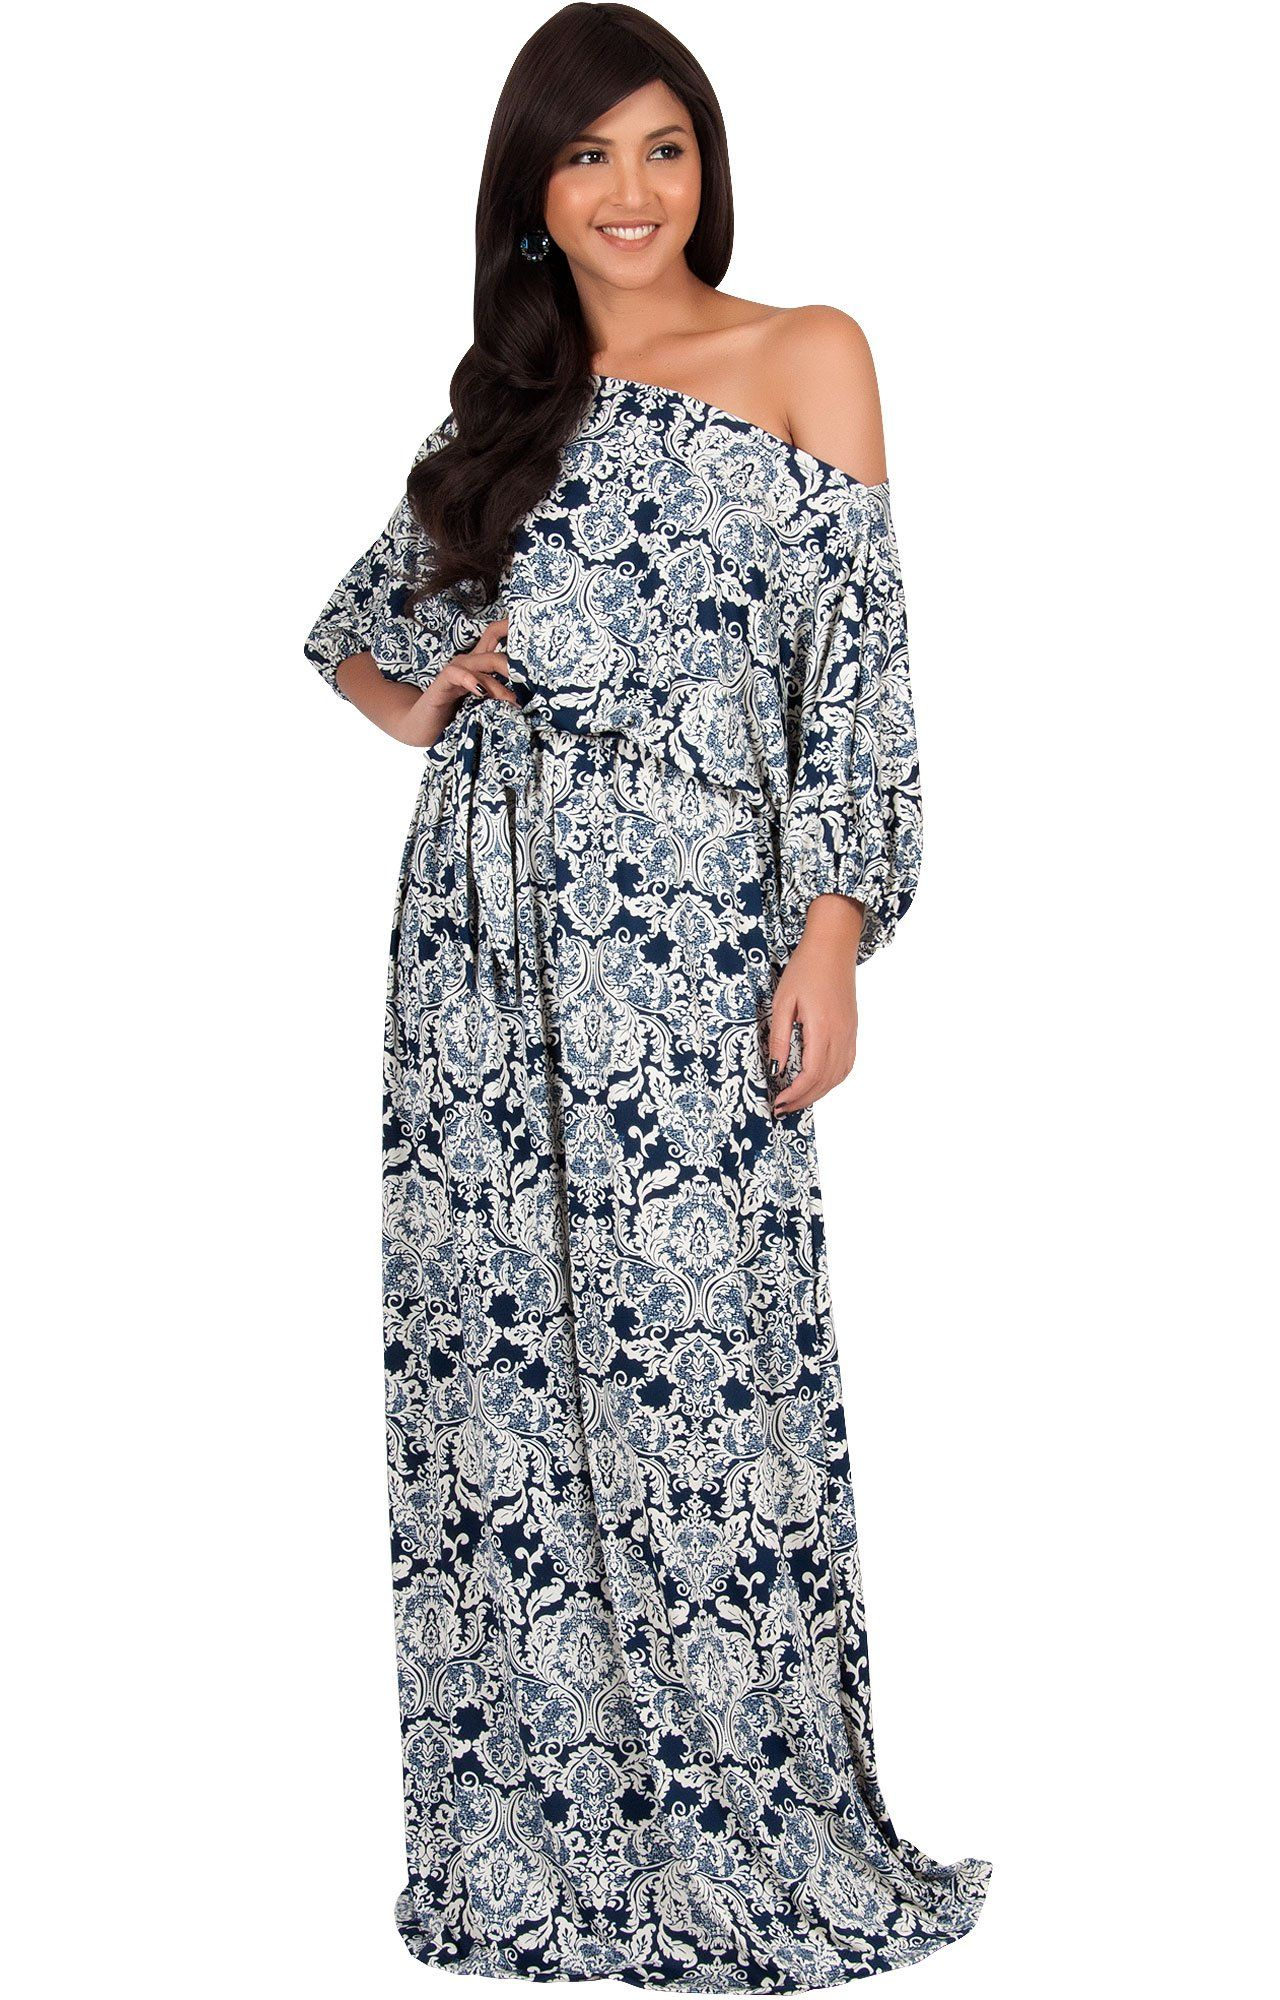 528fcee32890 Stylish Maternity to Nursing Dresses - Bun Maternity Nursing Apparel